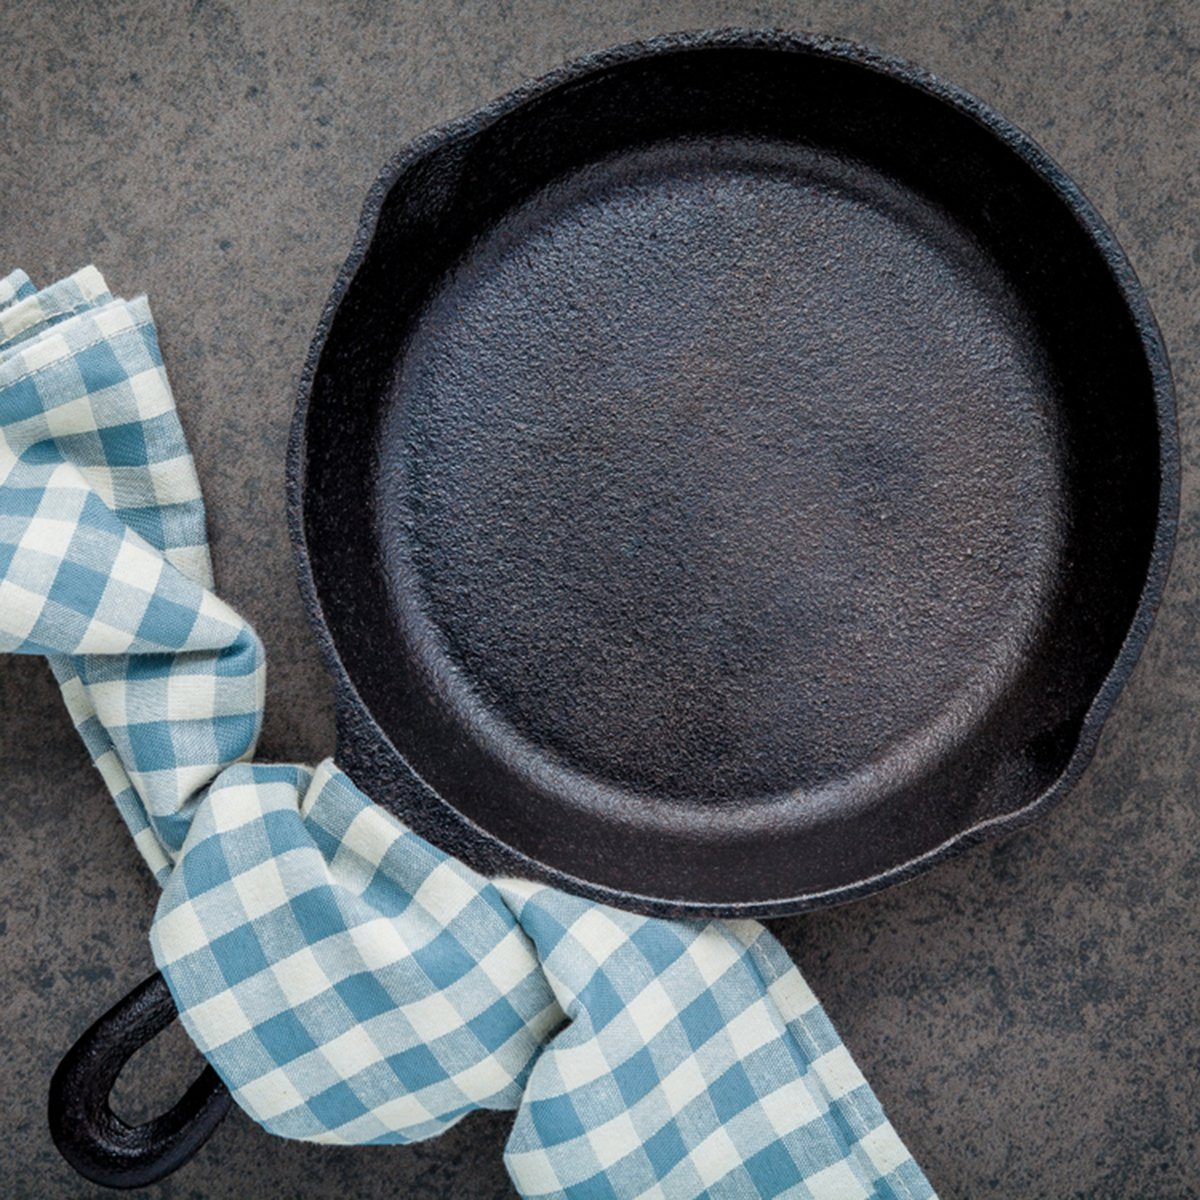 Empty cast iron skillet frying pan flat lay on dark stone background